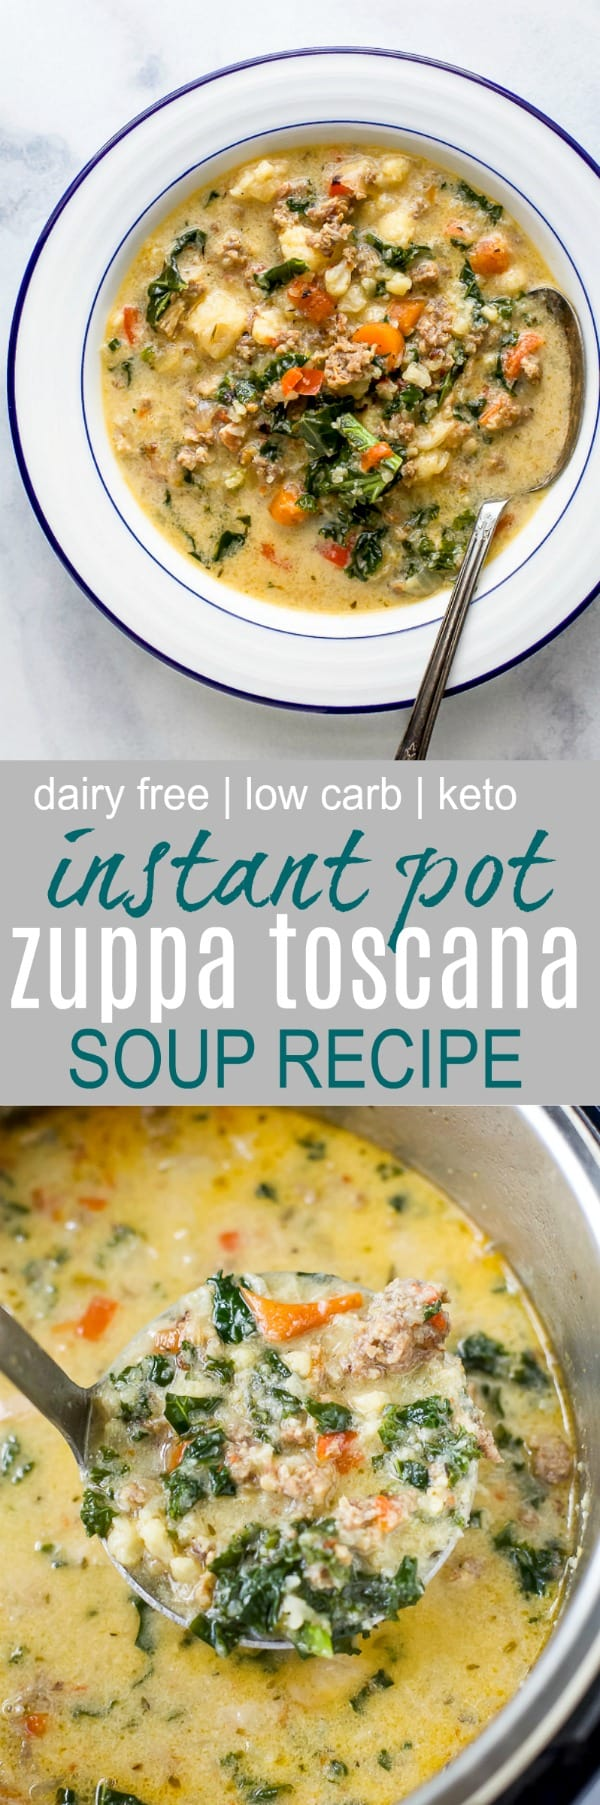 Instant Pot Zuppa Toscana Soup loaded with sausage, bacon, cauliflower and kale. This Zuppa Toscana recipe is low carb, dairy free, paleo and keto! It's an Olive Garden Copycat recipe that's guaranteed to be a hit!